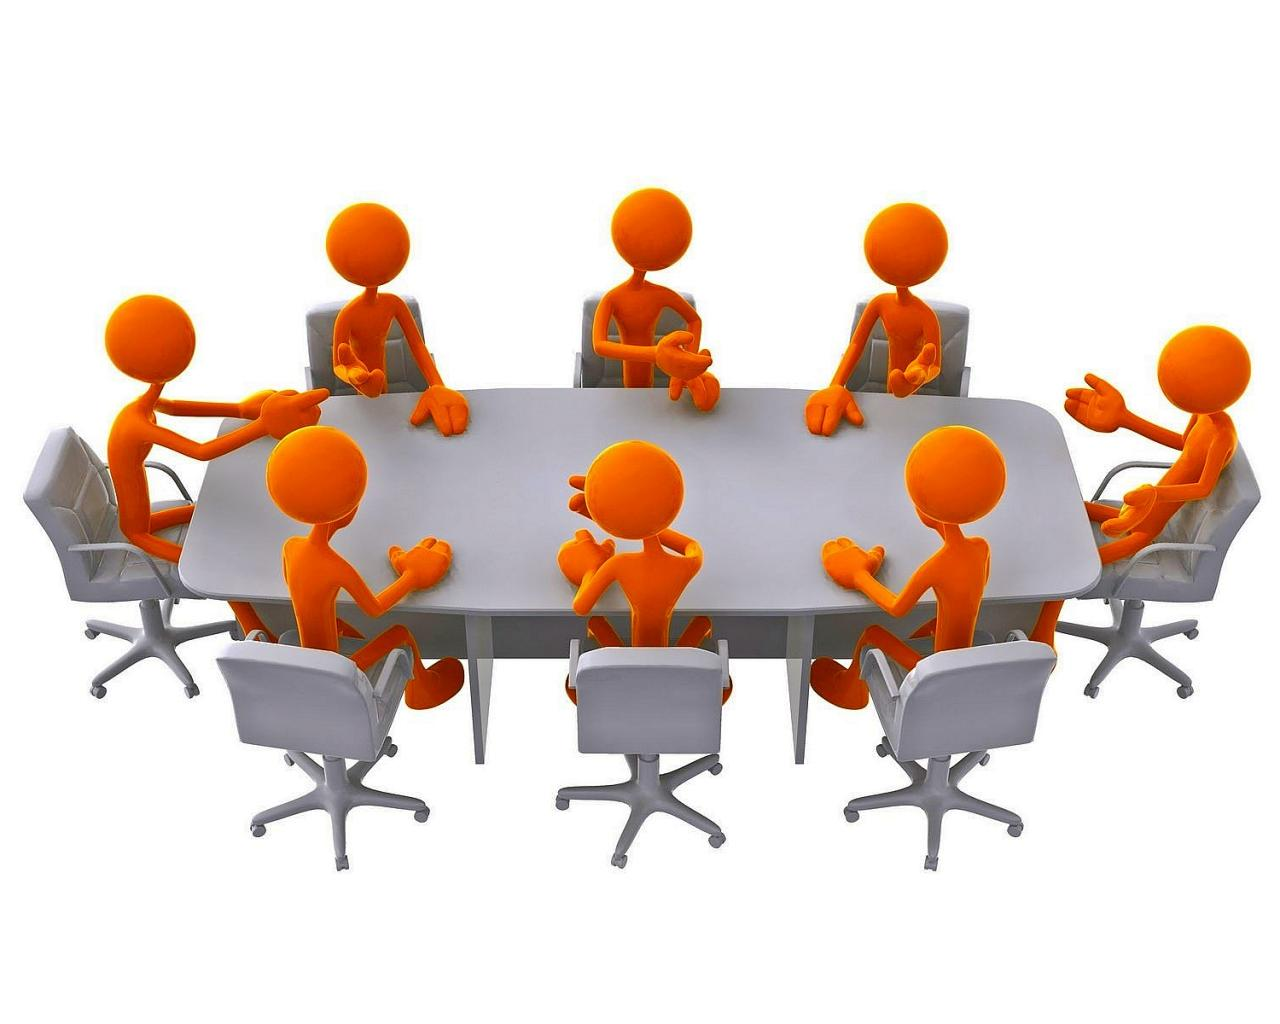 1280x1024 Meeting Clipart Free Download Clip Art On 2